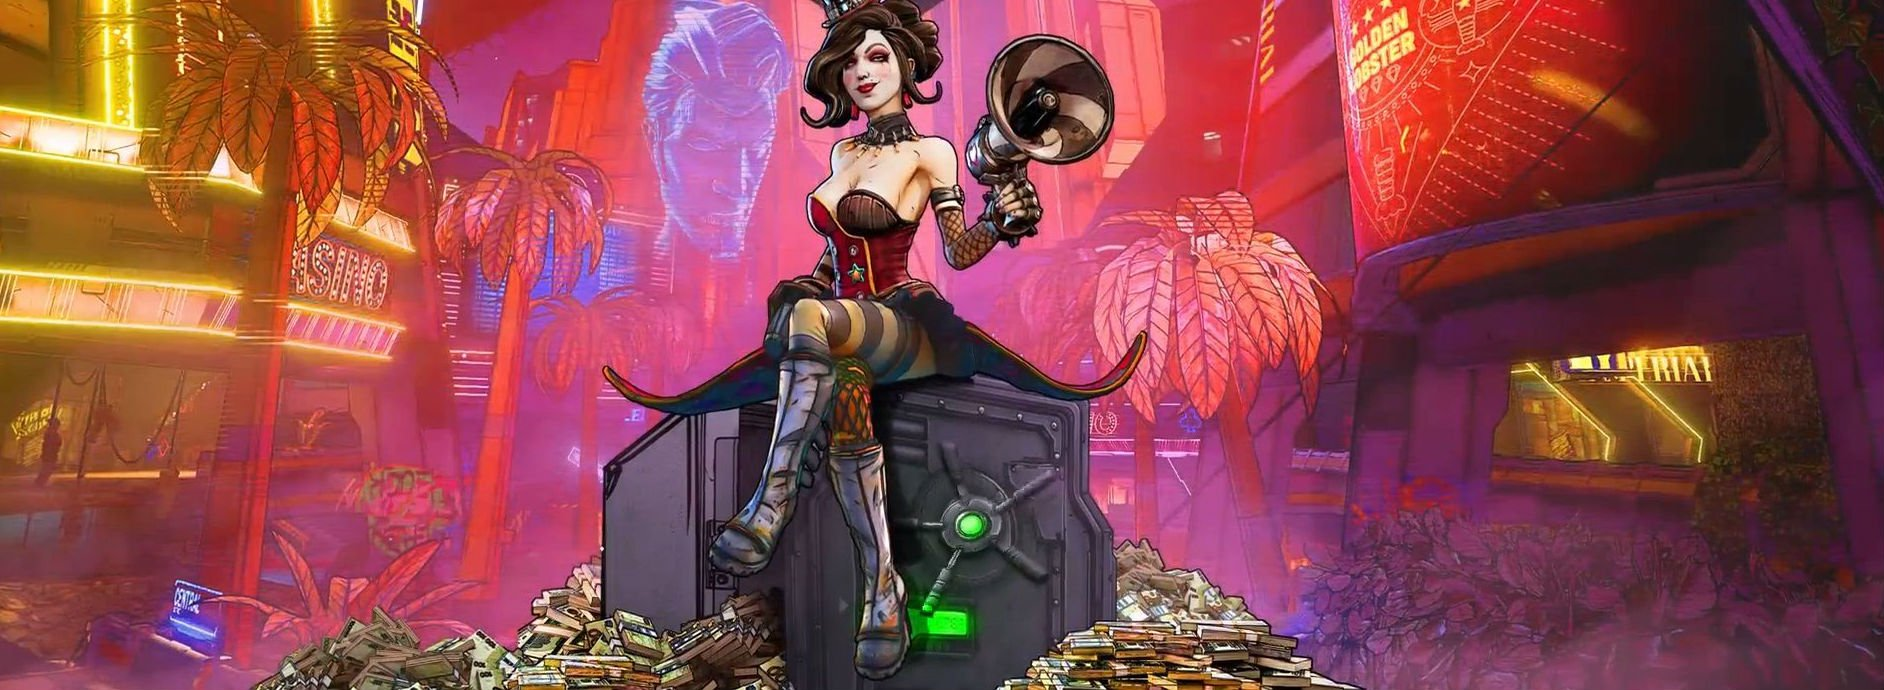 Review Borderlands 3 Moxxi S Heist Of The Handsome Jackpot